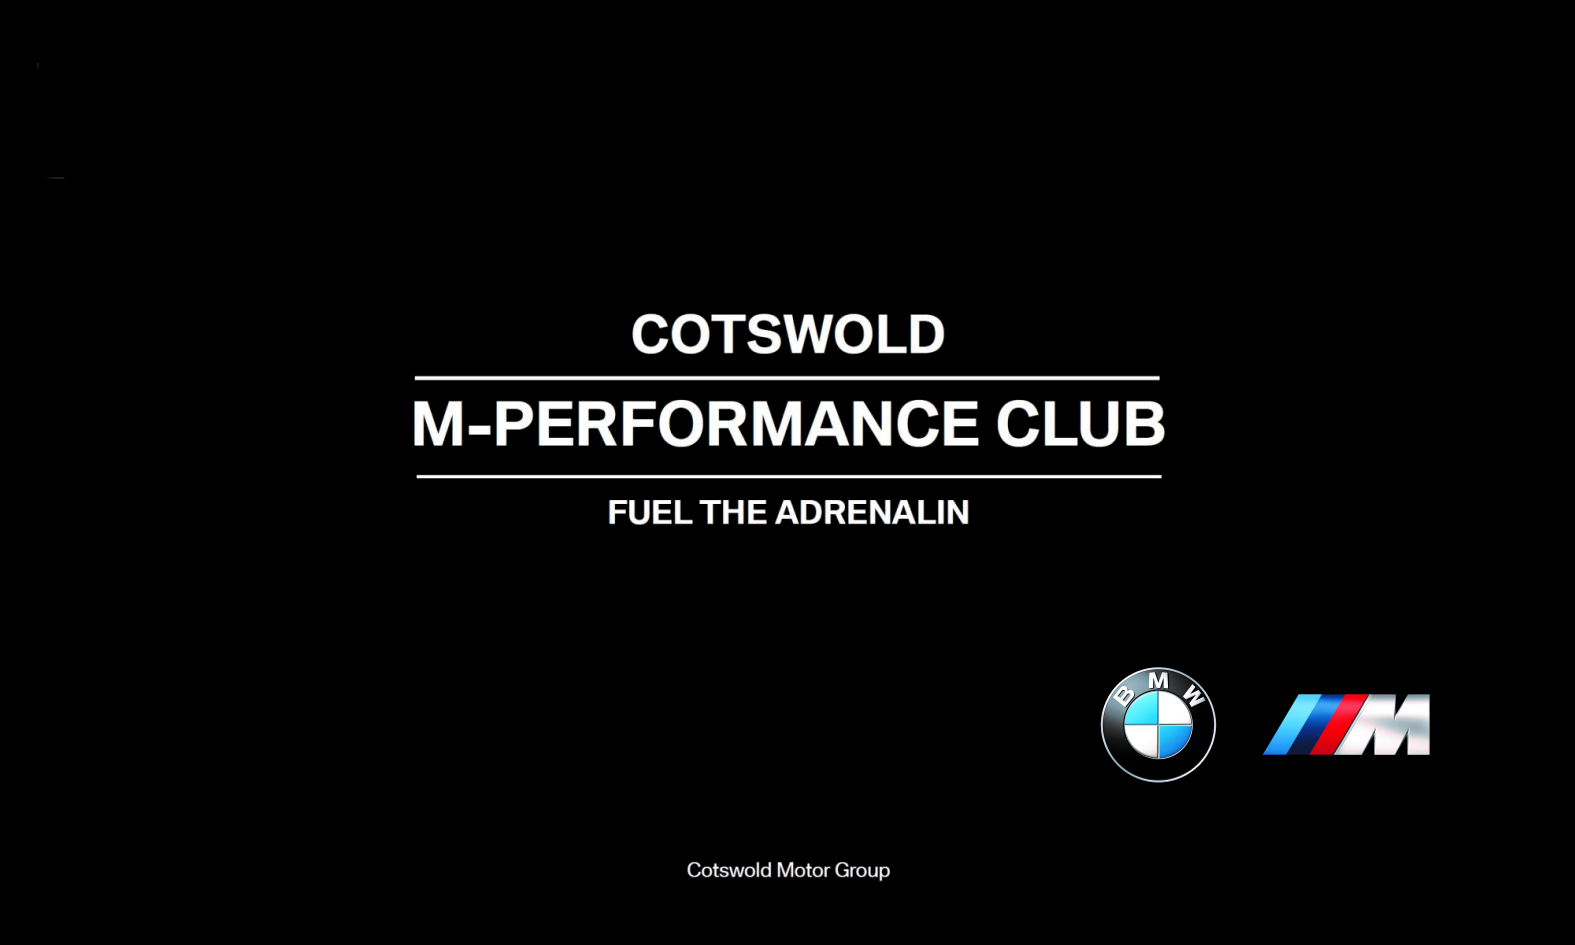 M-Performance Club by Cotswold Motor Group.